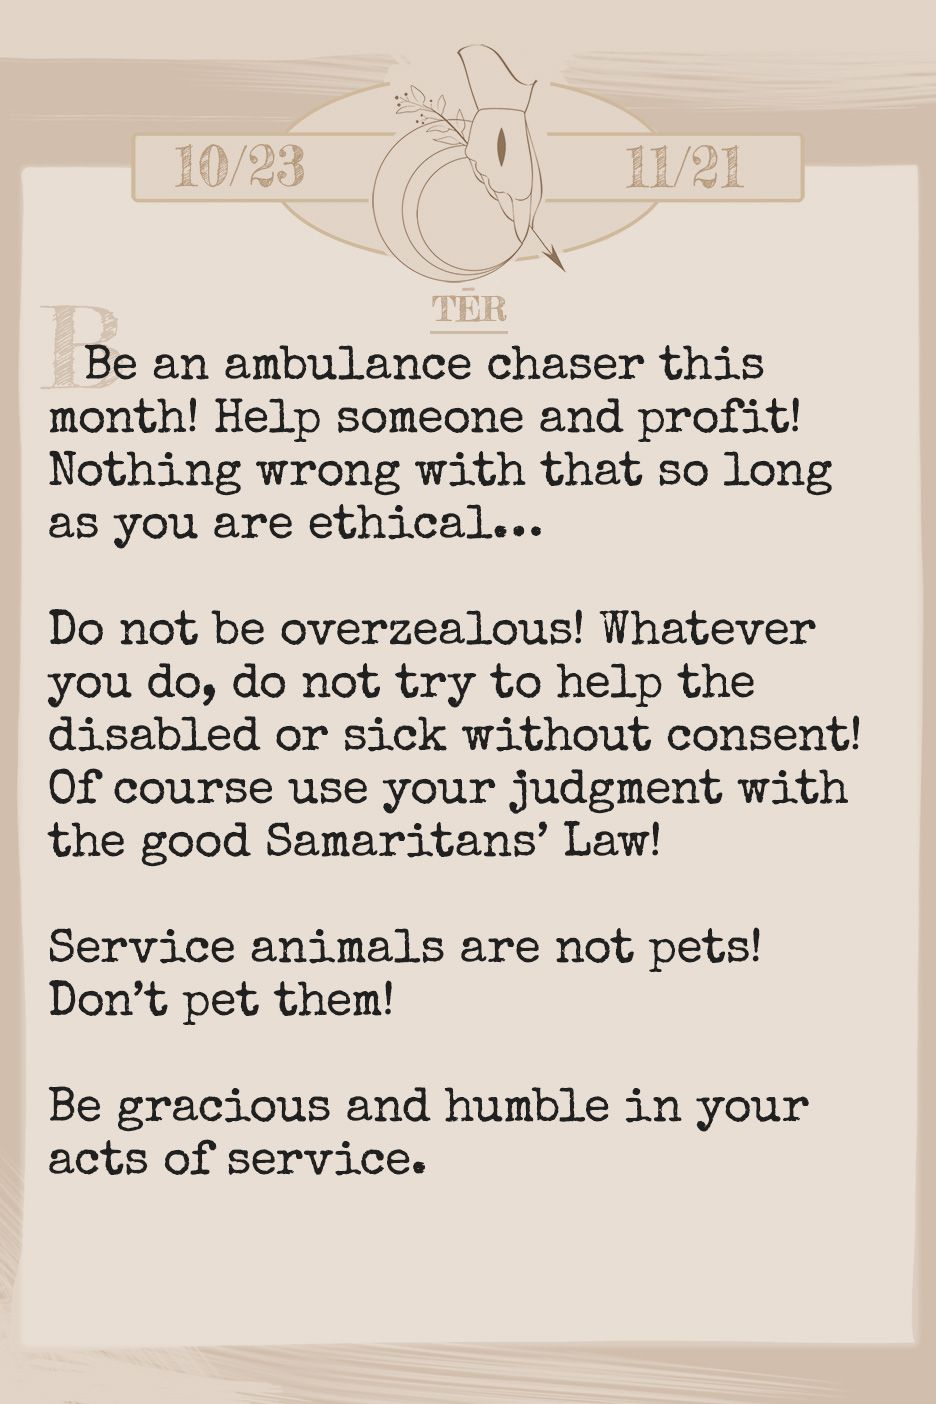 February 2019 Horoscope (Old sign: Scorpio) Be an ambulance chaser this month! Help someone and profit! Nothing wrong with that so long as you are ethical… Do not be overzealous! Whatever you do, do not try to help the disabled or sick without consent! Of course use your judgment with the good Samaritans' Law! Service animals are not pets! Don't pet them! Be gracious and humble in your acts of service.